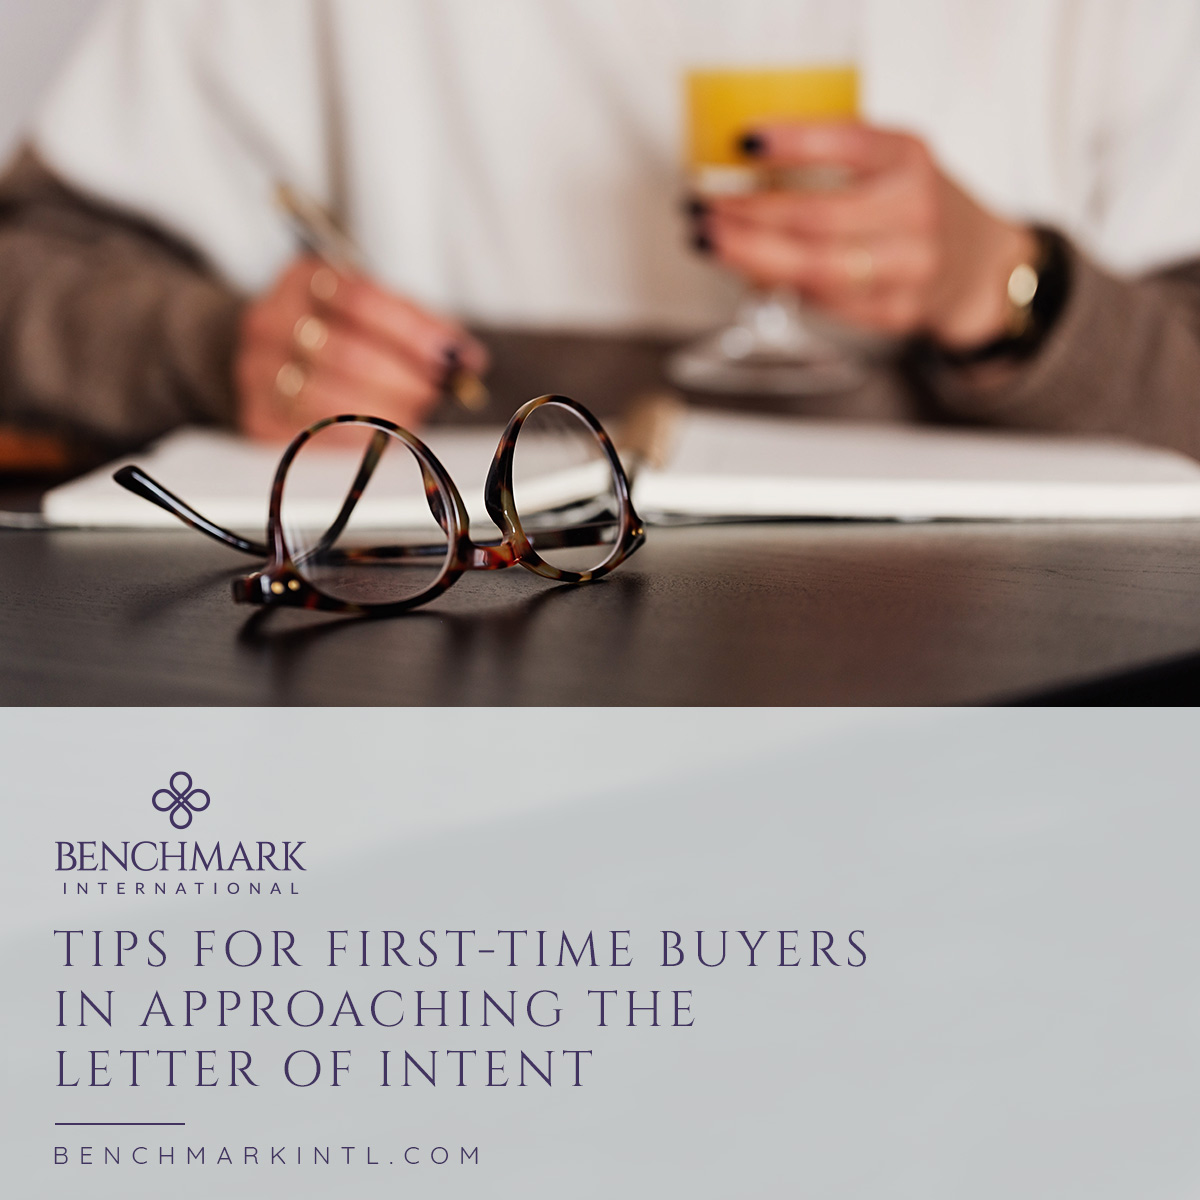 Tips_for_First_Time_Buyers_in_Approaching_the_Letter_of_Intent_Social